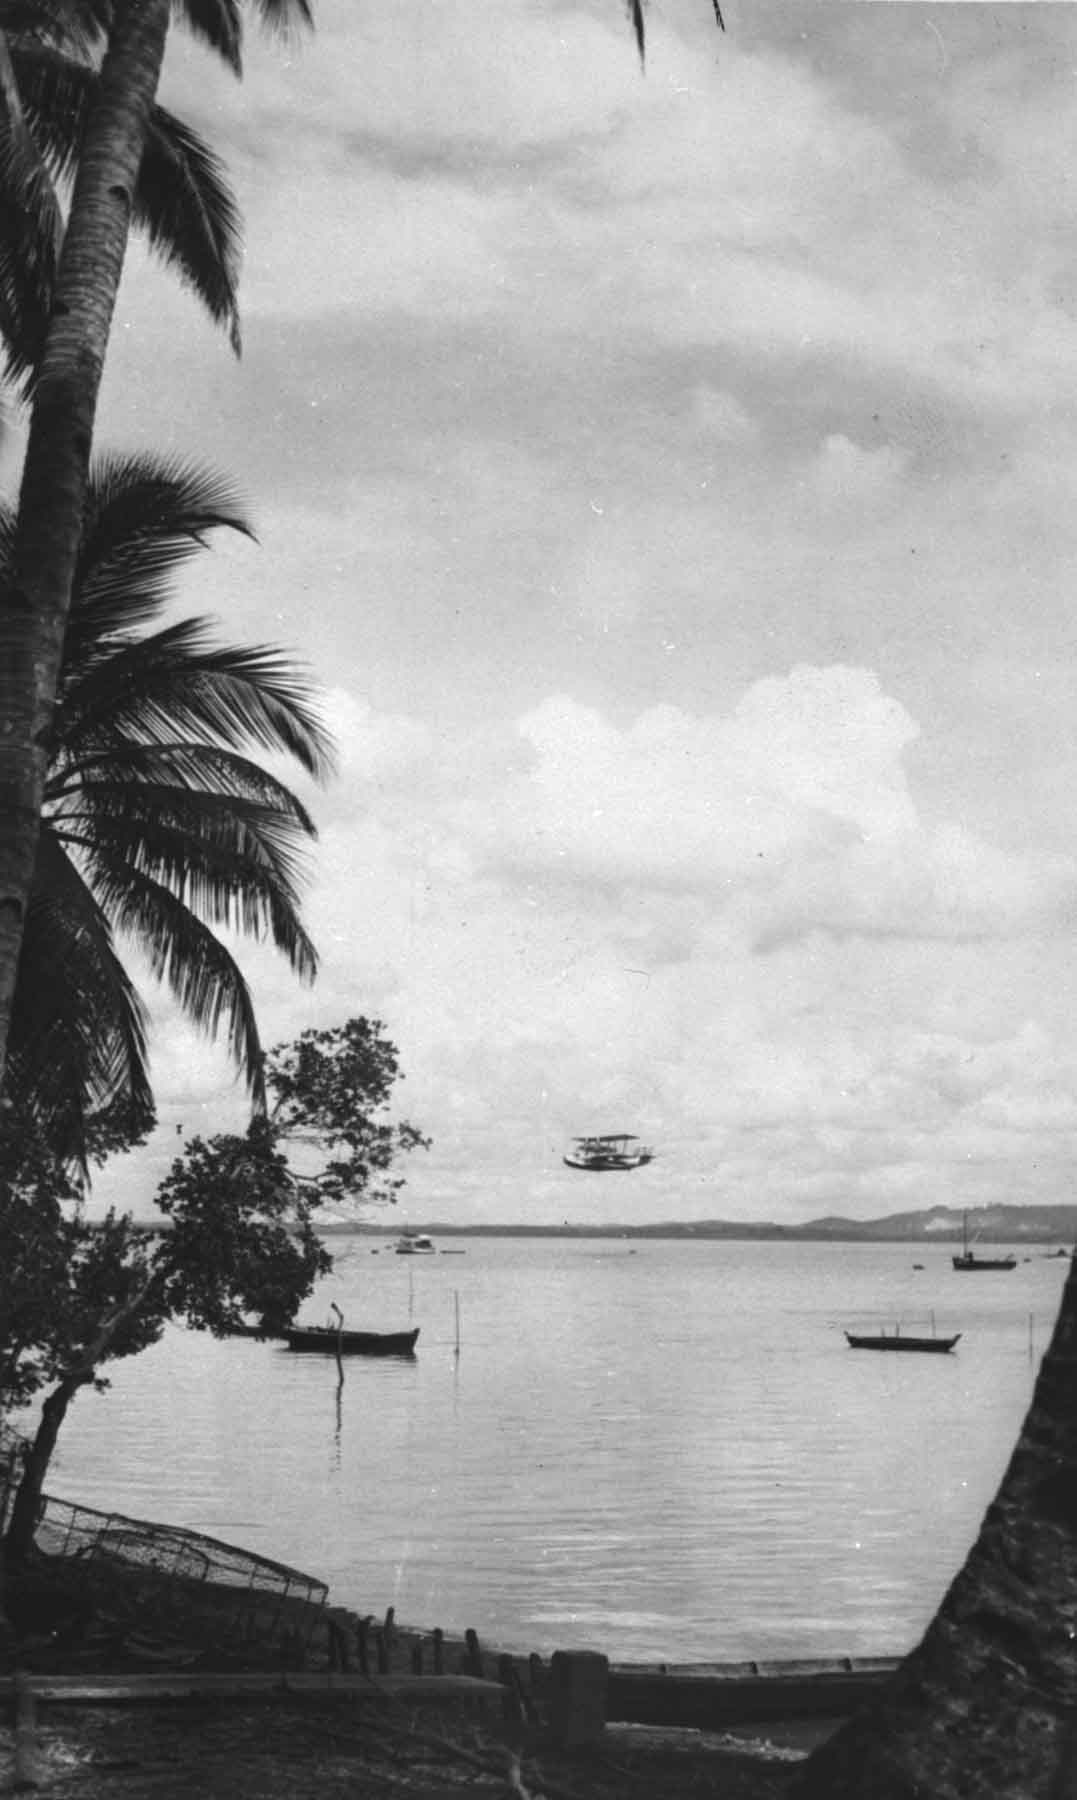 Straits of Jahore, Short Singapore III coming in to land, undated